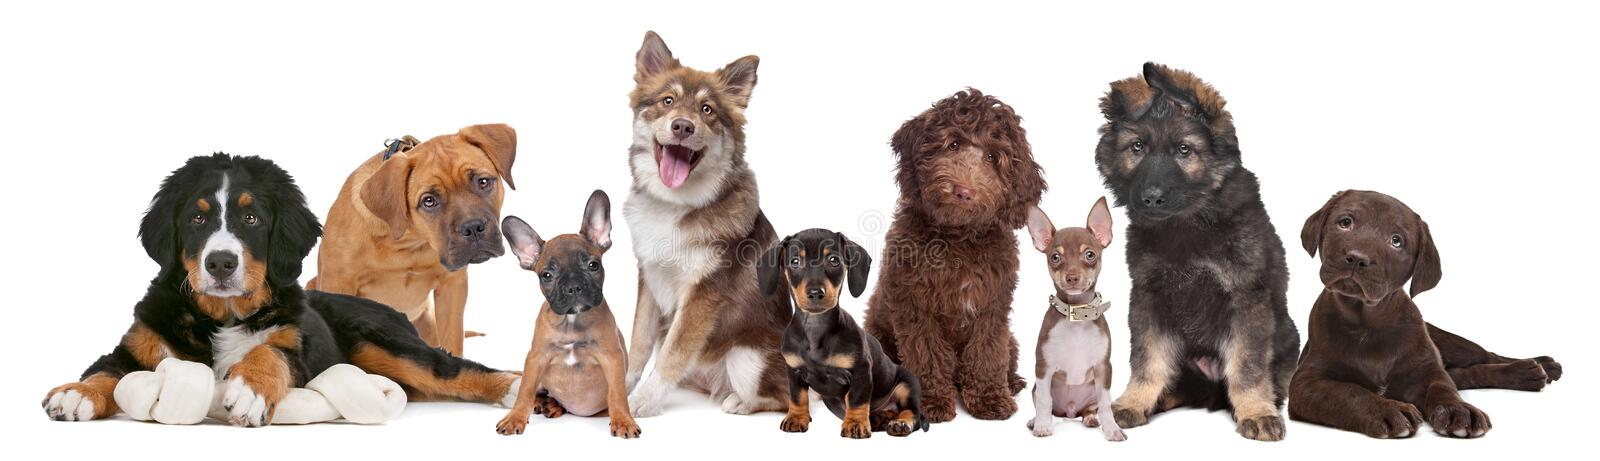 Grand groupe de chiots images stock